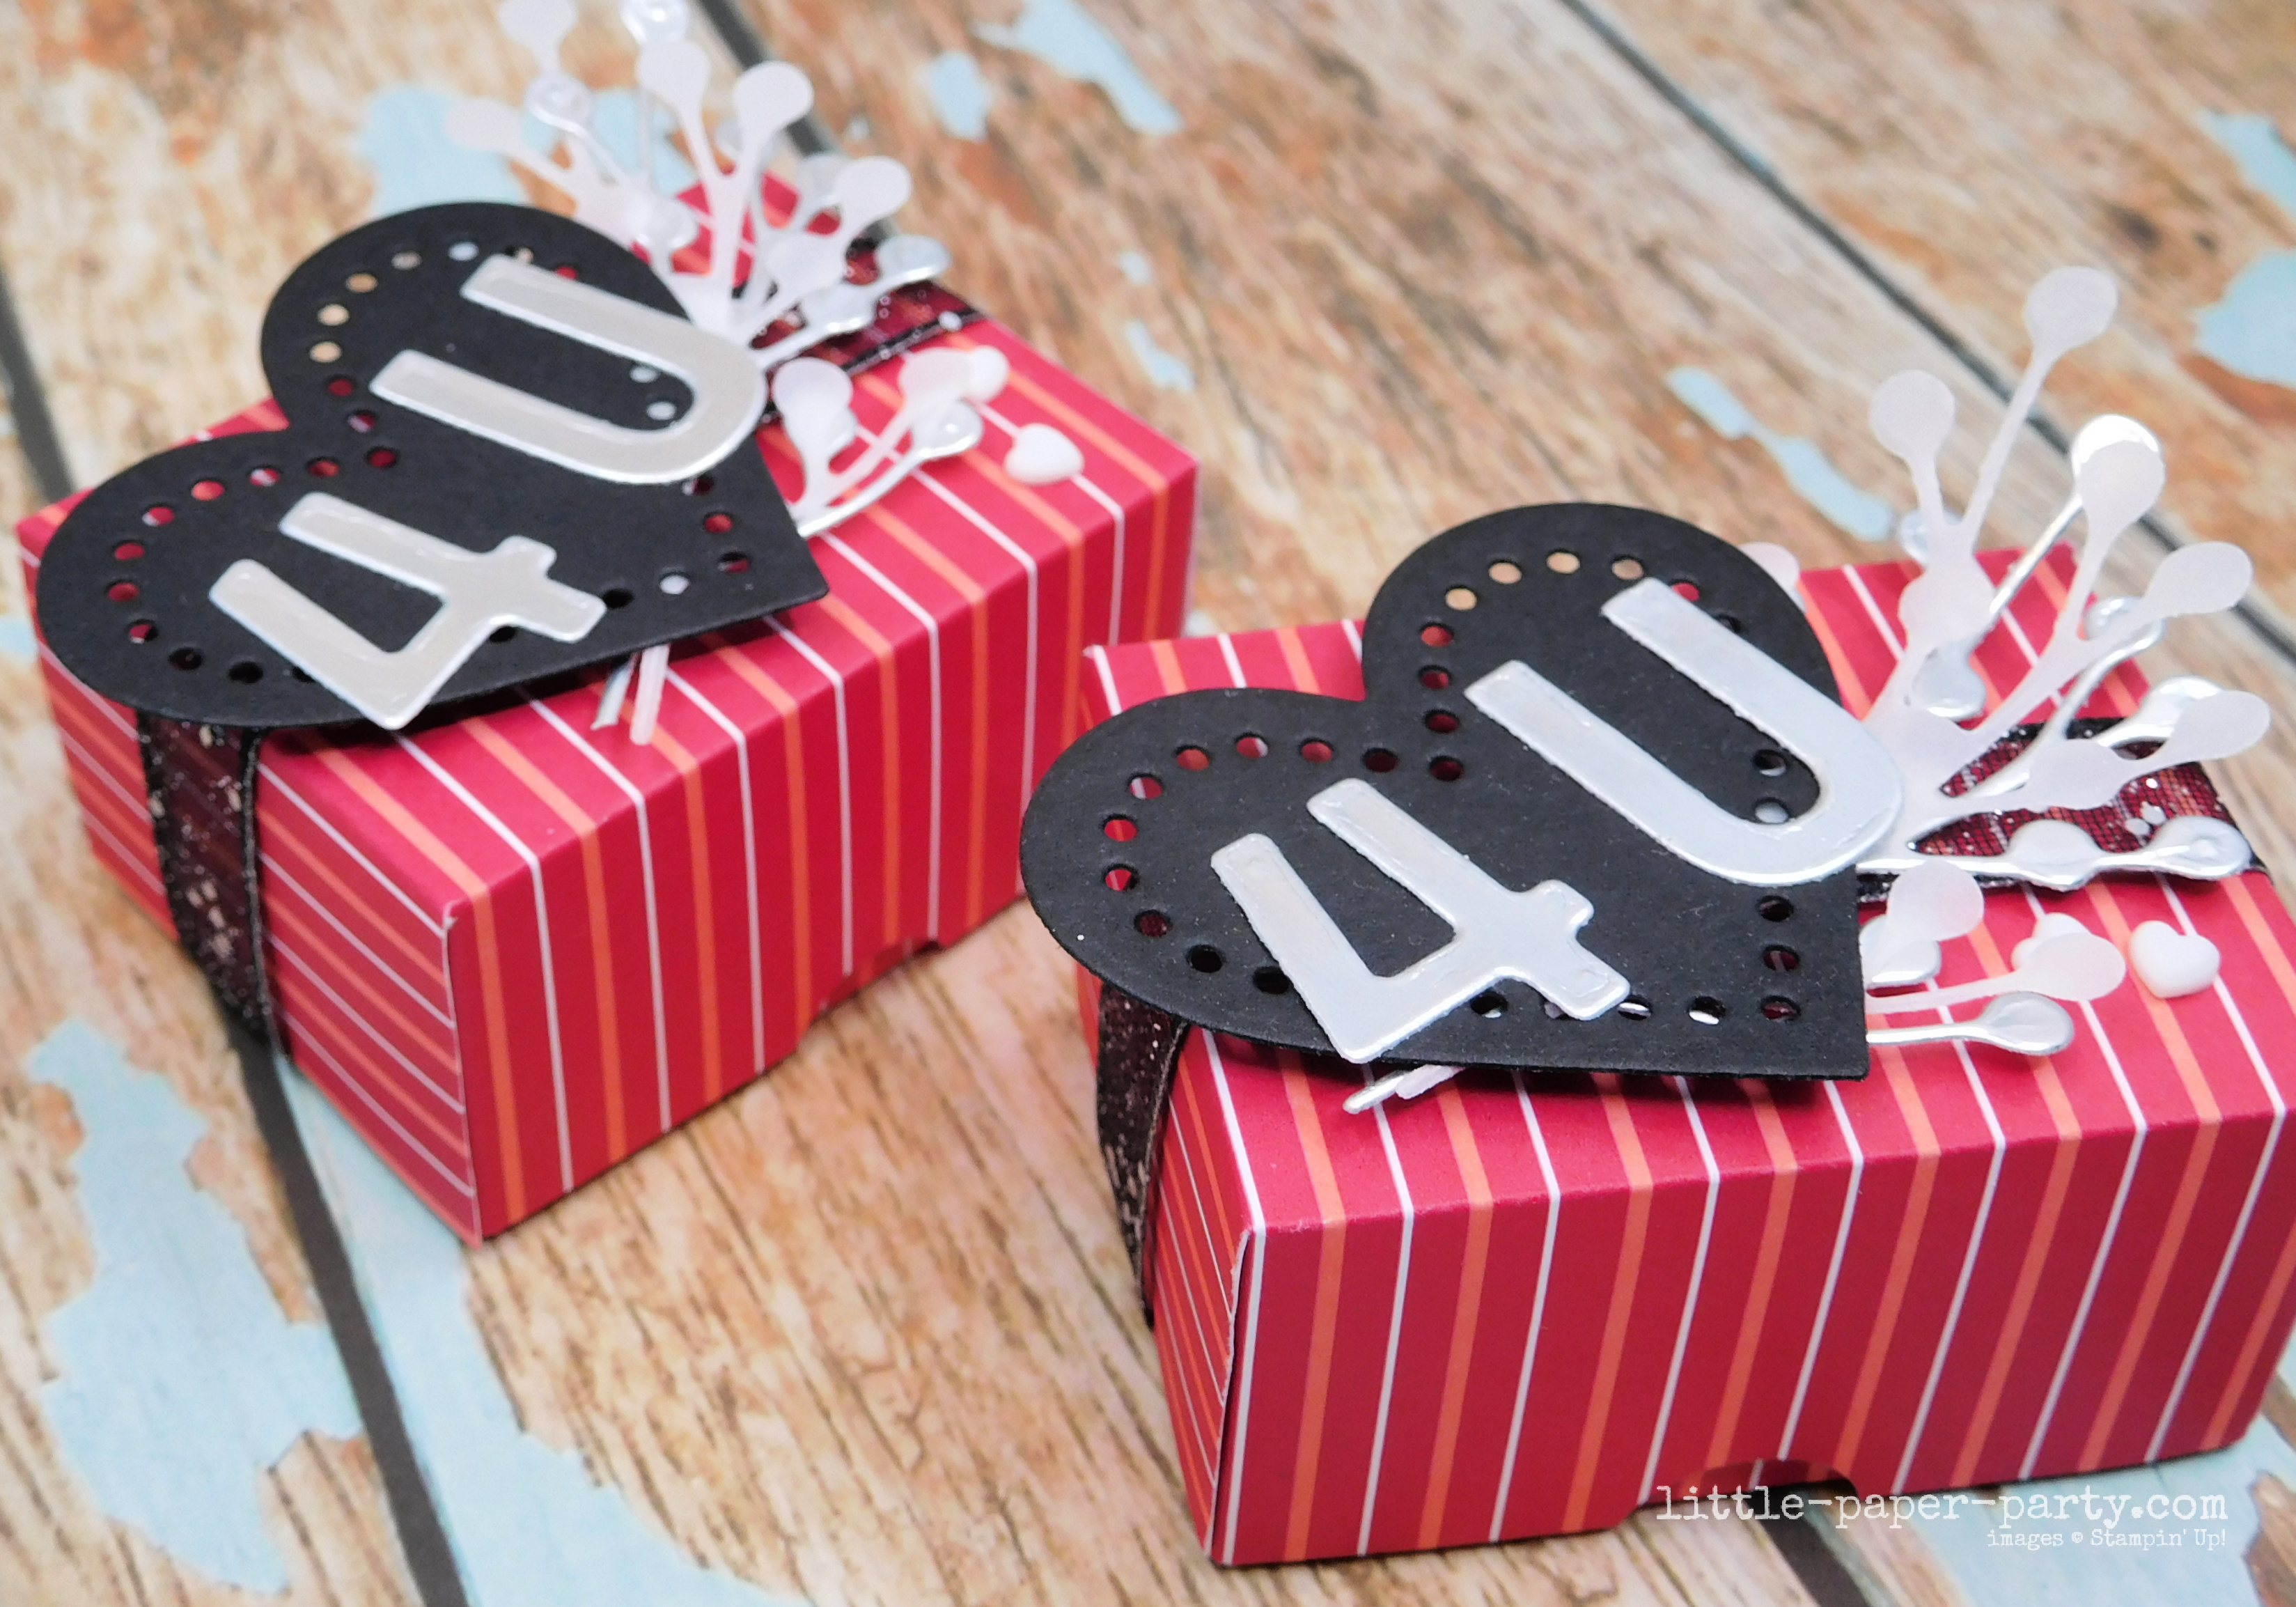 Little Paper Party, Valentine's Day 2021 #2 - Tiny Treat Box 4